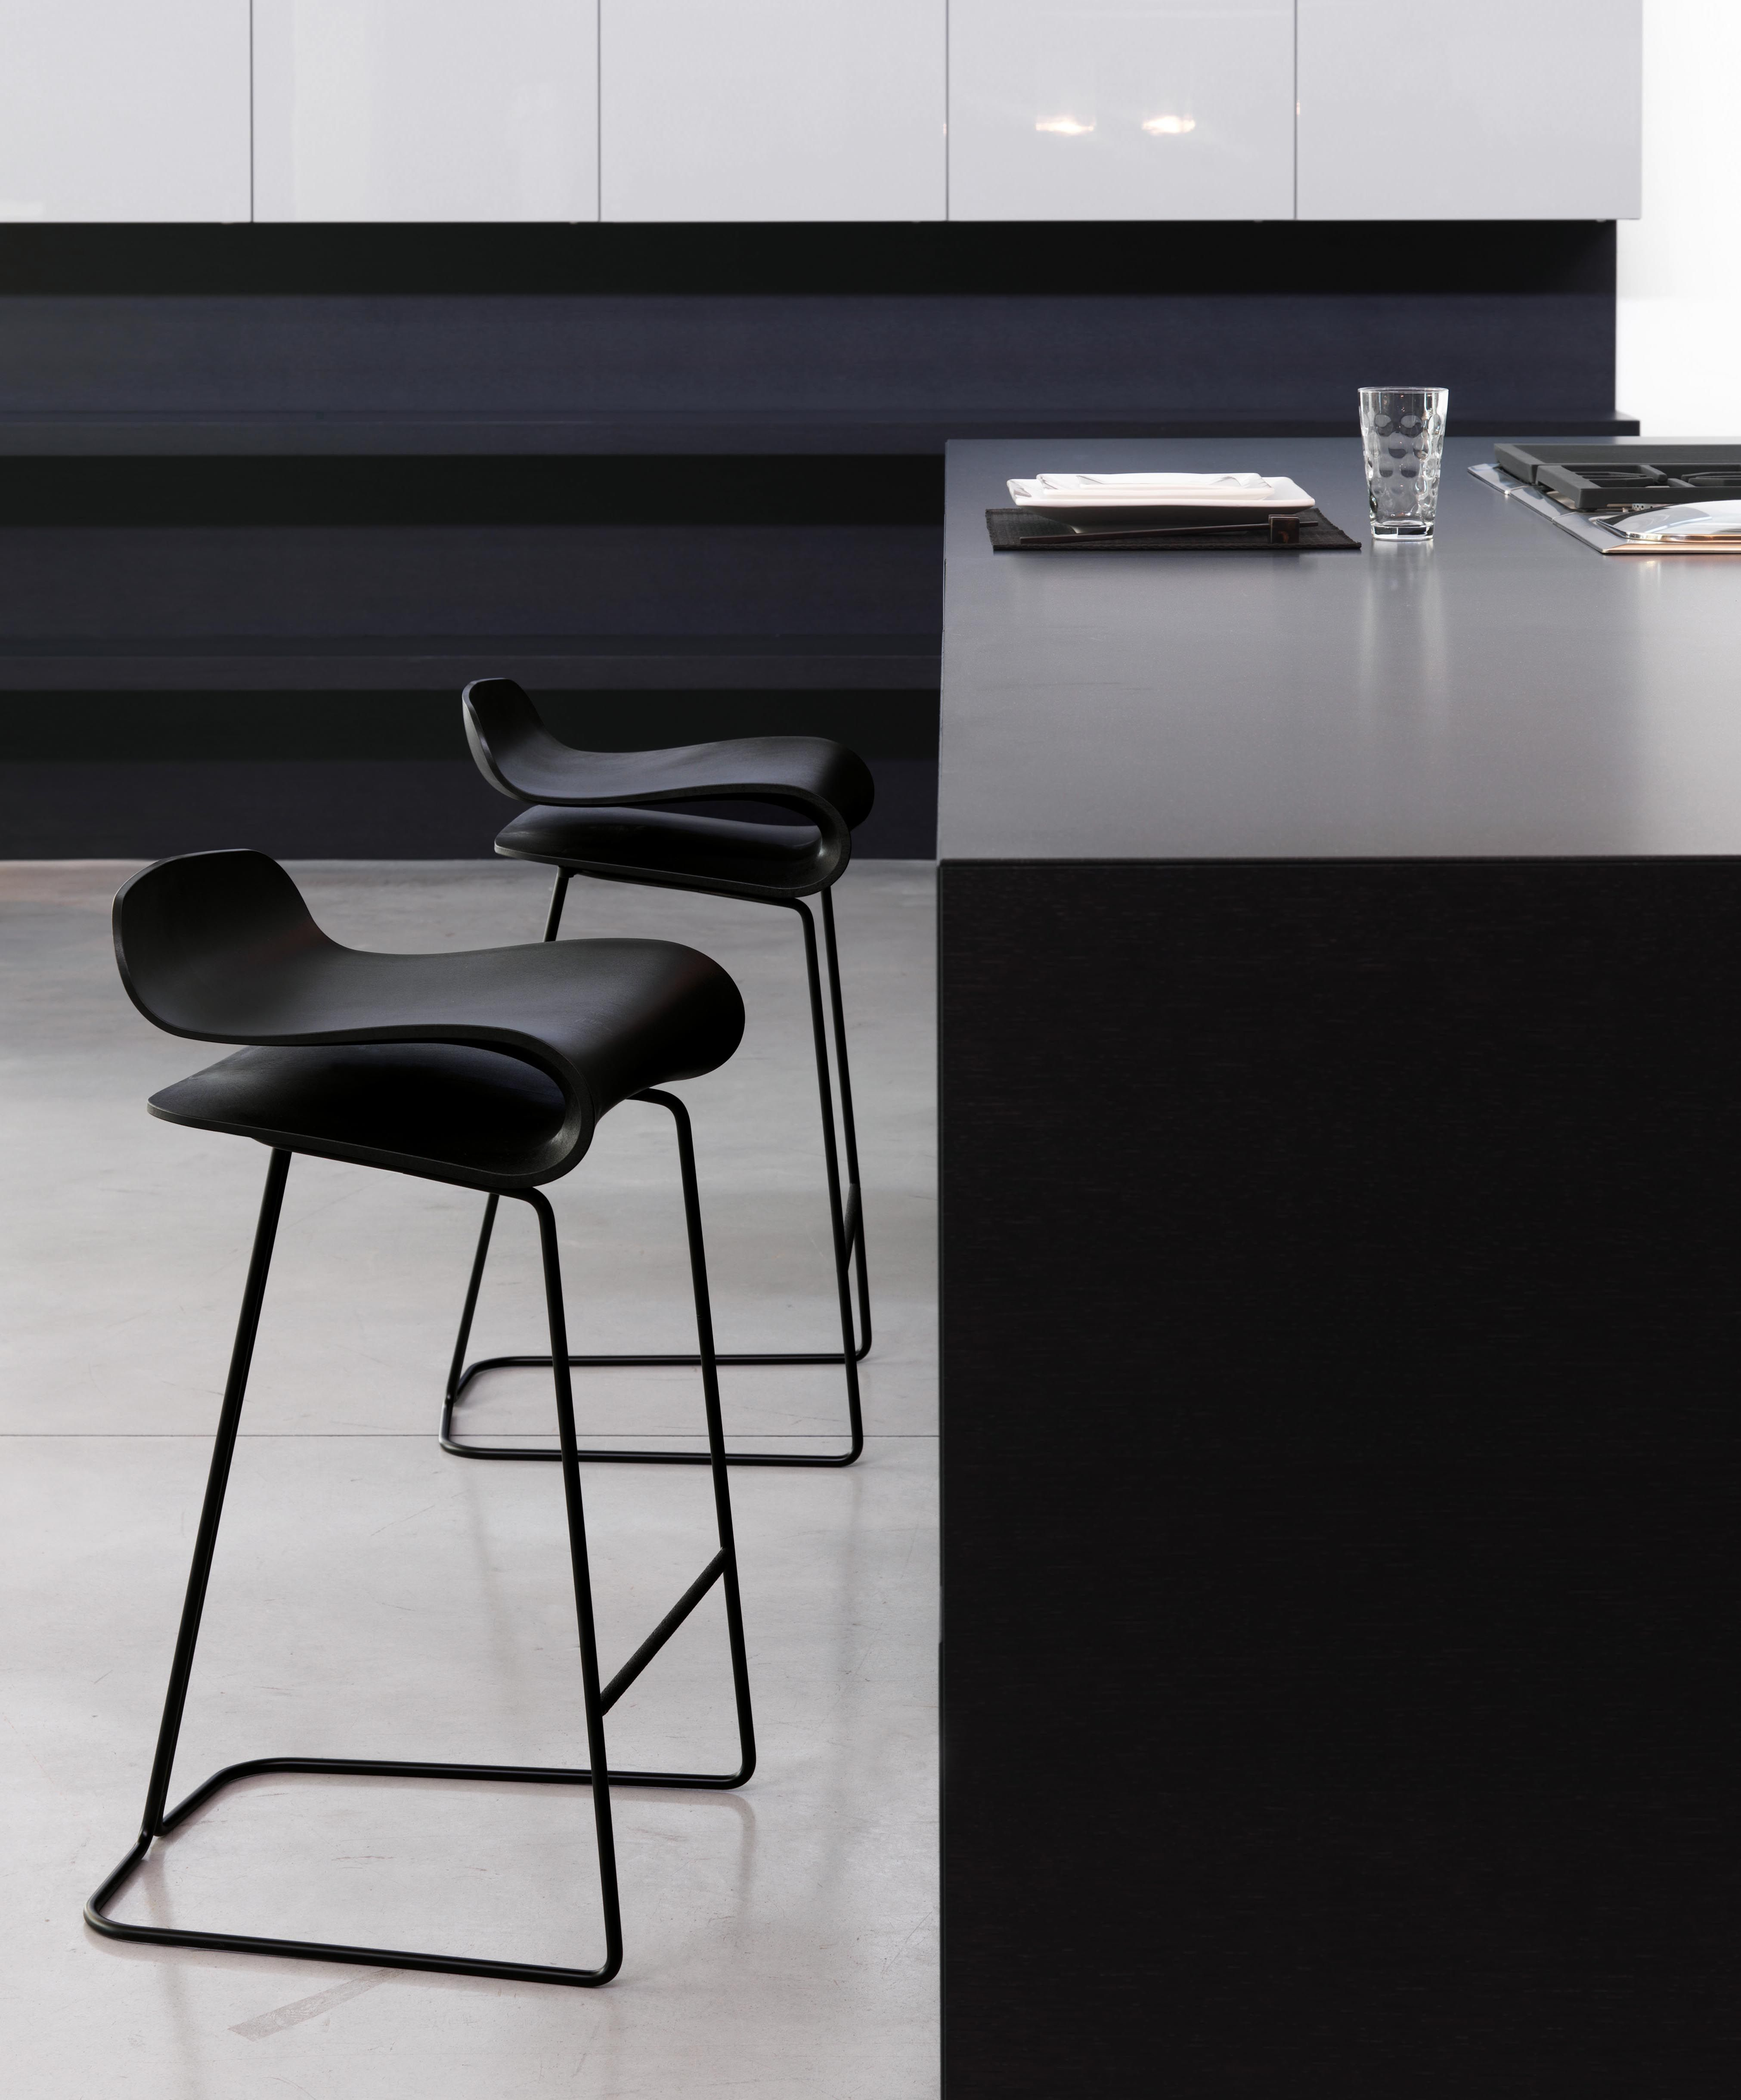 tabouret de bar bcn h 76 cm noir pied chrom kristalia. Black Bedroom Furniture Sets. Home Design Ideas